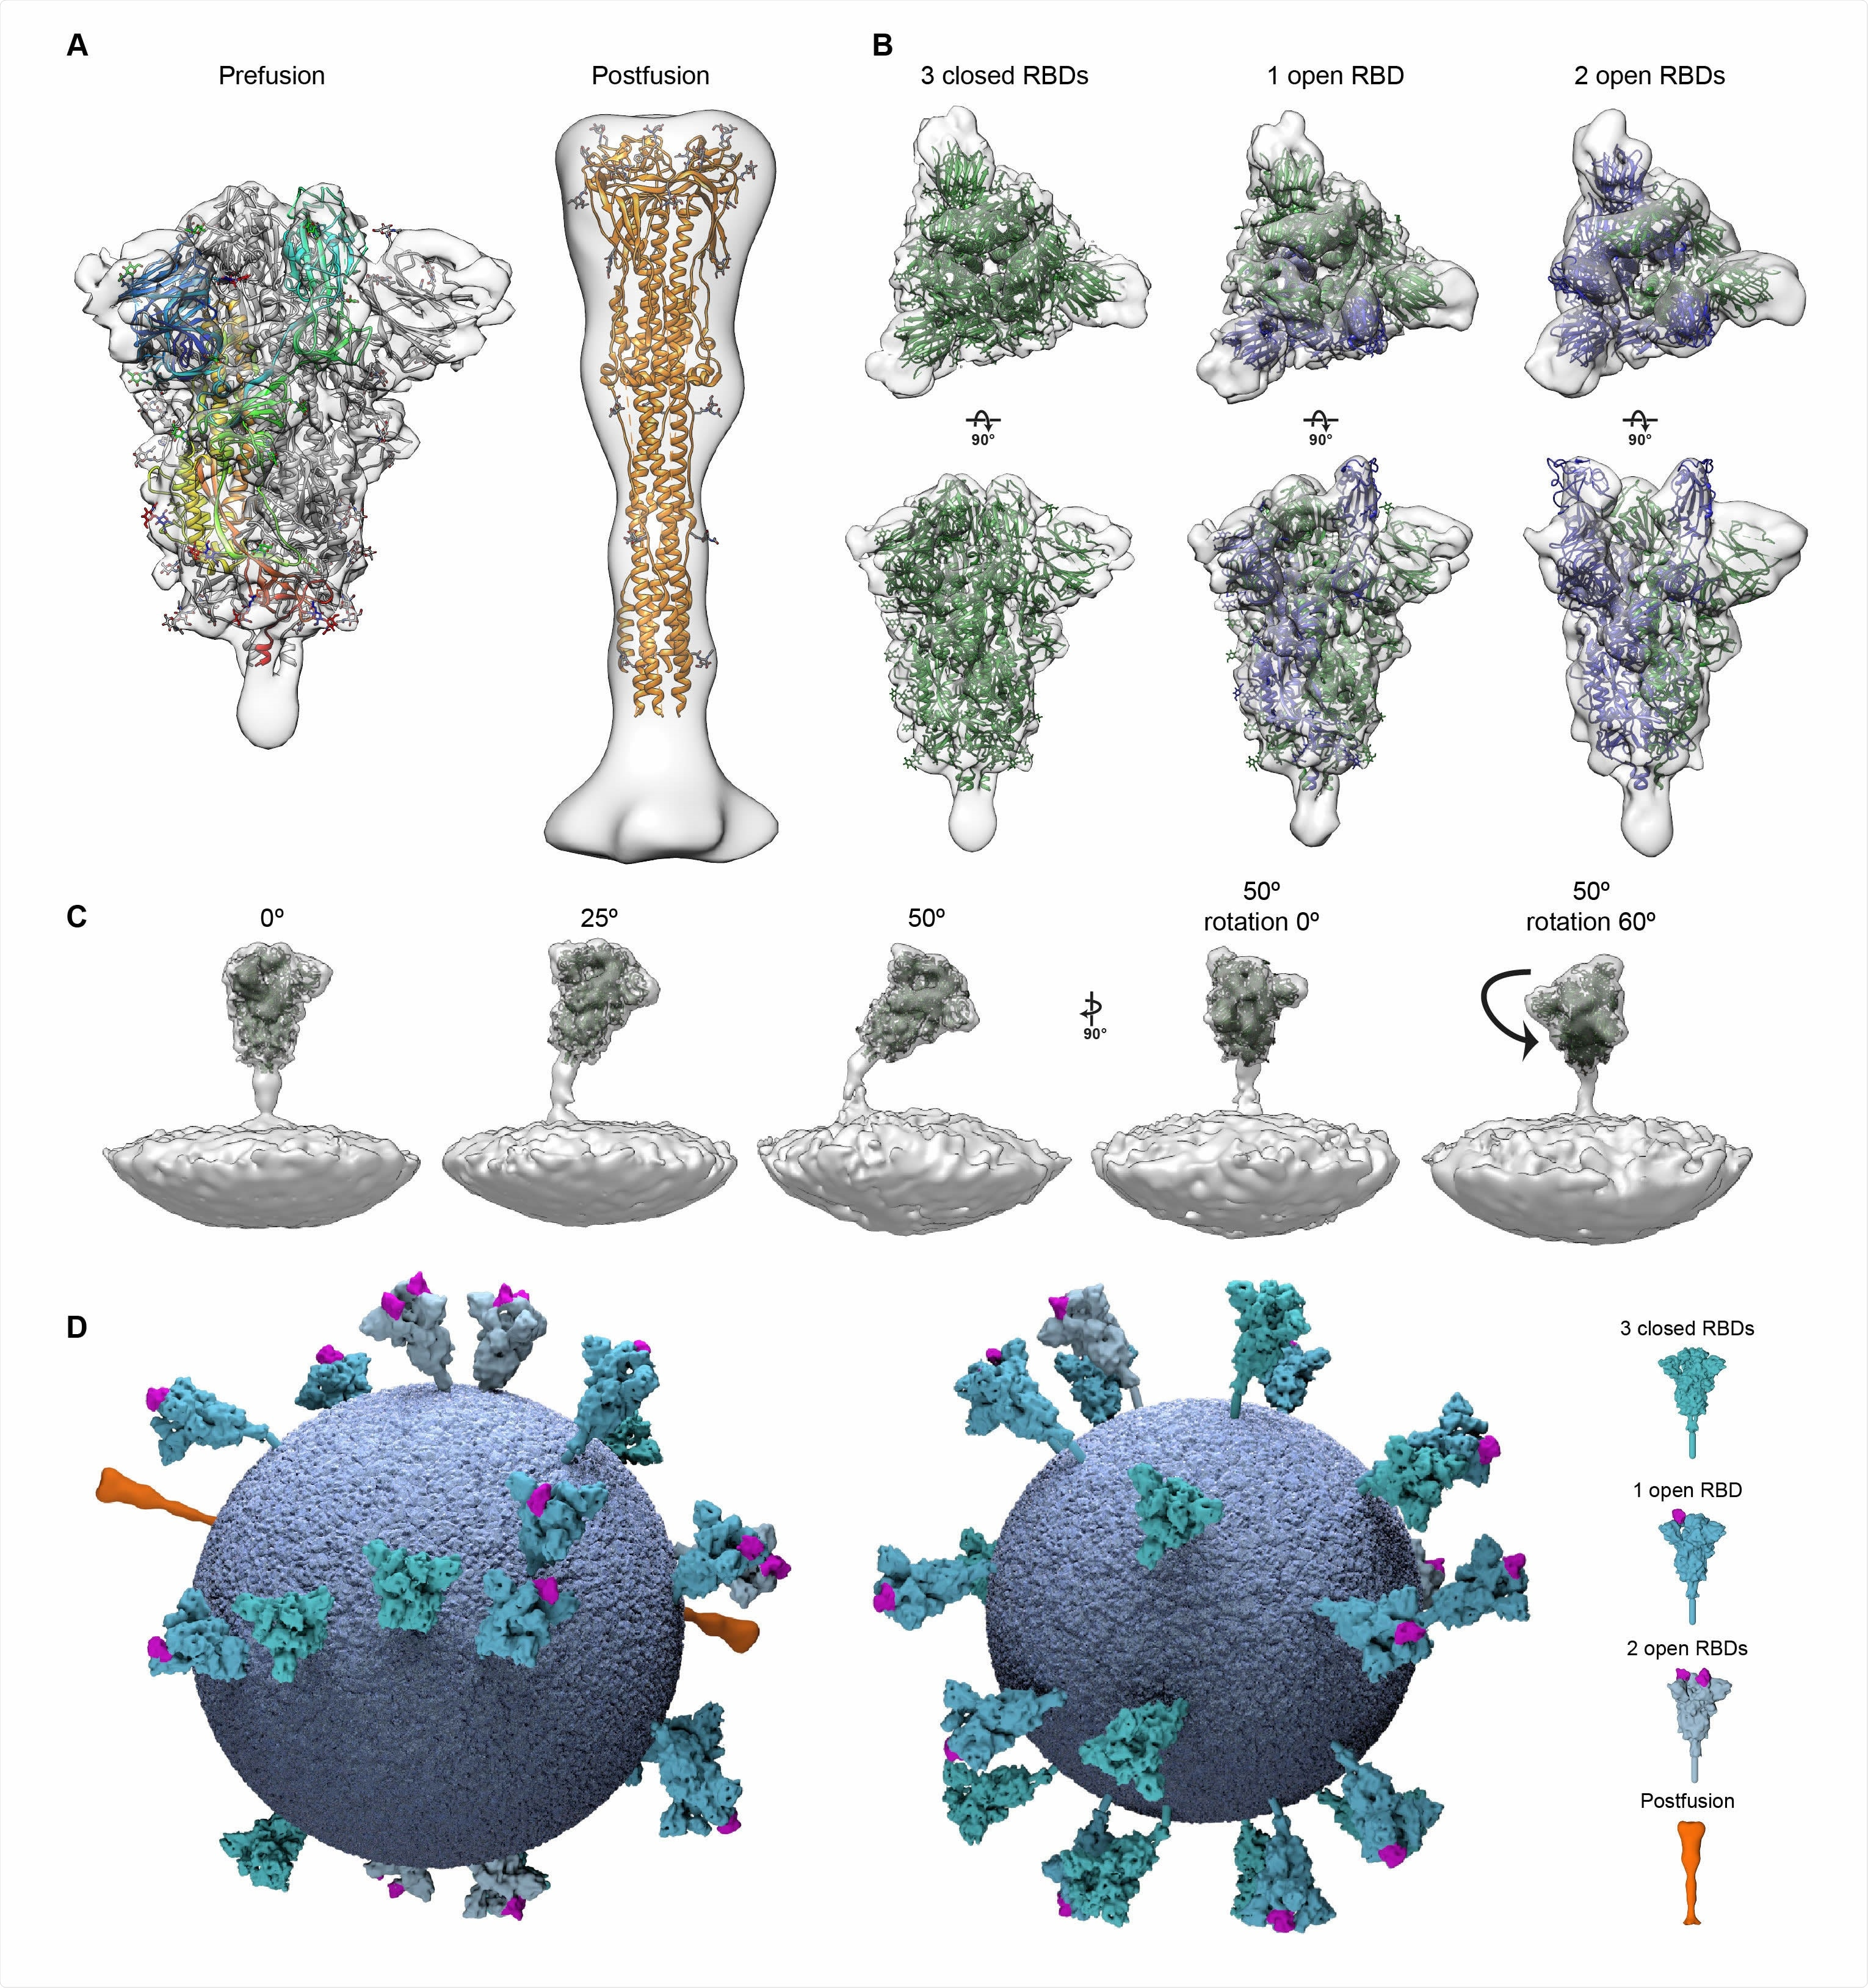 Structural analysis of SARS-CoV-2 S trimers from intact virions. (A) Structures of the prefusion (left) and postfusion (right) S trimer from intact virions determined by subtomogram averaging. The structures are shown as a transparent grey isosurface fitted with structures of the closed, prefusion SARS-CoV-2 S trimer (PDB 6VXX) and the postfusion SARS-CoV-1 S trimer (PDB 6M3W). In the prefusion form, one monomer is colored from blue (N terminus) to red (C terminus). The N-terminal domain is blue, the RBD appears cyan. Note that the NTD does not fully occupy the EM density because a number of loops are not resolved or built in PDB 6VXX. (B) The different conformations of the prefusion S trimer observed on intact virions by subtomogram averaging. Three conformations were observed: all RBDs in the closed position (left, fitted with PDB 6VXX); one RBD in the open position (center, fitted with PDB 6VYB); two RBDs in the open position (right, fitted with PDB 6X2B which does not include modelled glycans). Note that the twoopen conformation has only been observed in vitro after inserting multiple stabilizing mutations. S monomers with closed RBDs are green, and with open RBDs are blue. (C) Averaging of subsets of trimers grouped according to their orientation relative to the membrane shows flexibility in the stalk region. Examples are shown for pools centered at 0°, 25° and 50° from the perpendicular, and for two different rotations of the trimer relative to the tilt direction. (D) 3D models of two individual SARS-CoV-2 virions with a membrane (blue) of the measured radius, and all spike proteins shown in the conformations, positions and orientations determined by subtomogram averaging.